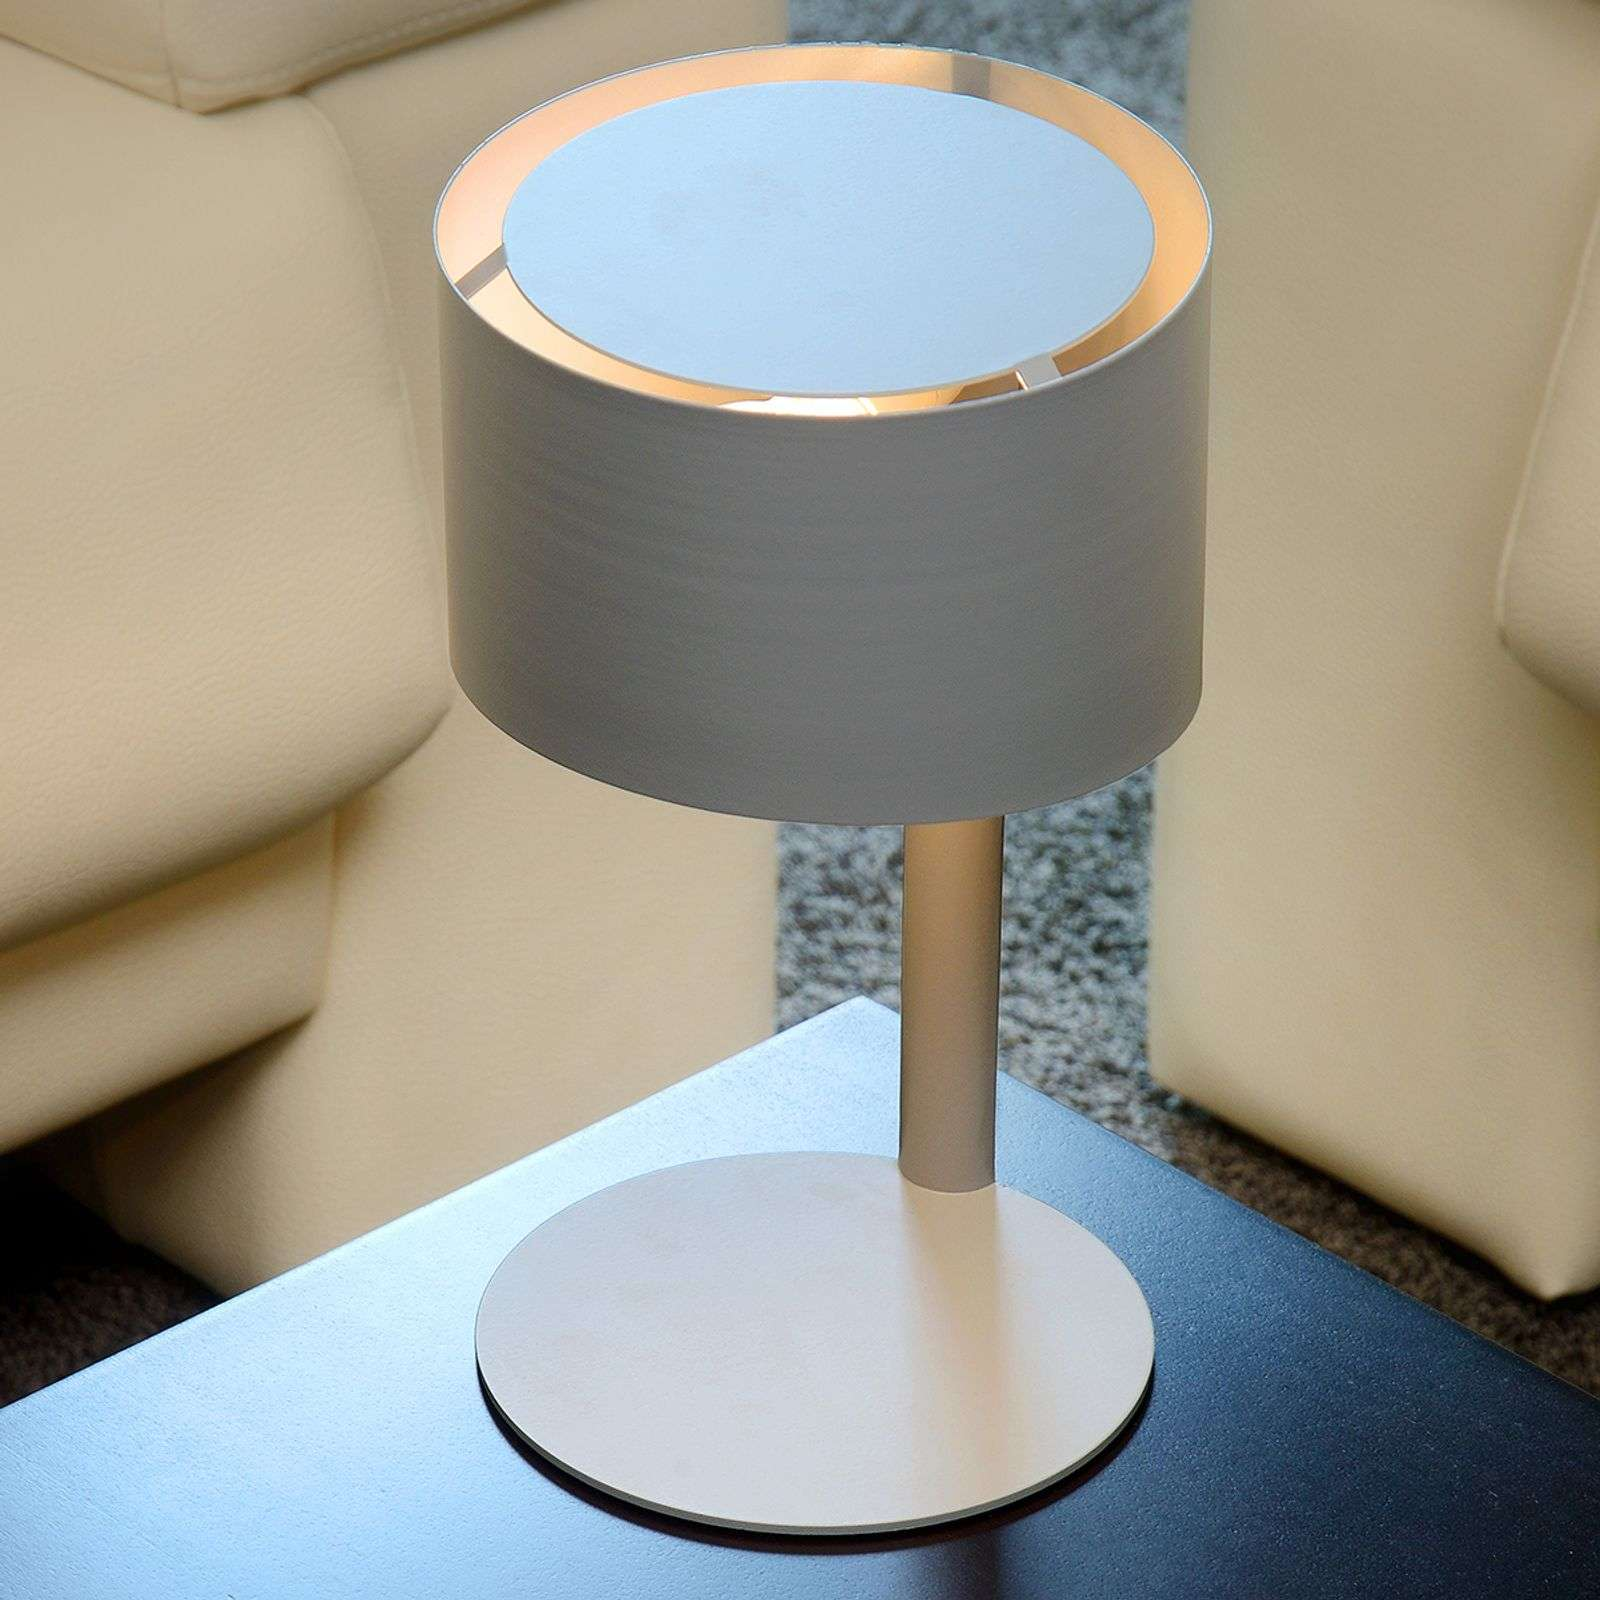 Lampe à poser Knulle, grise